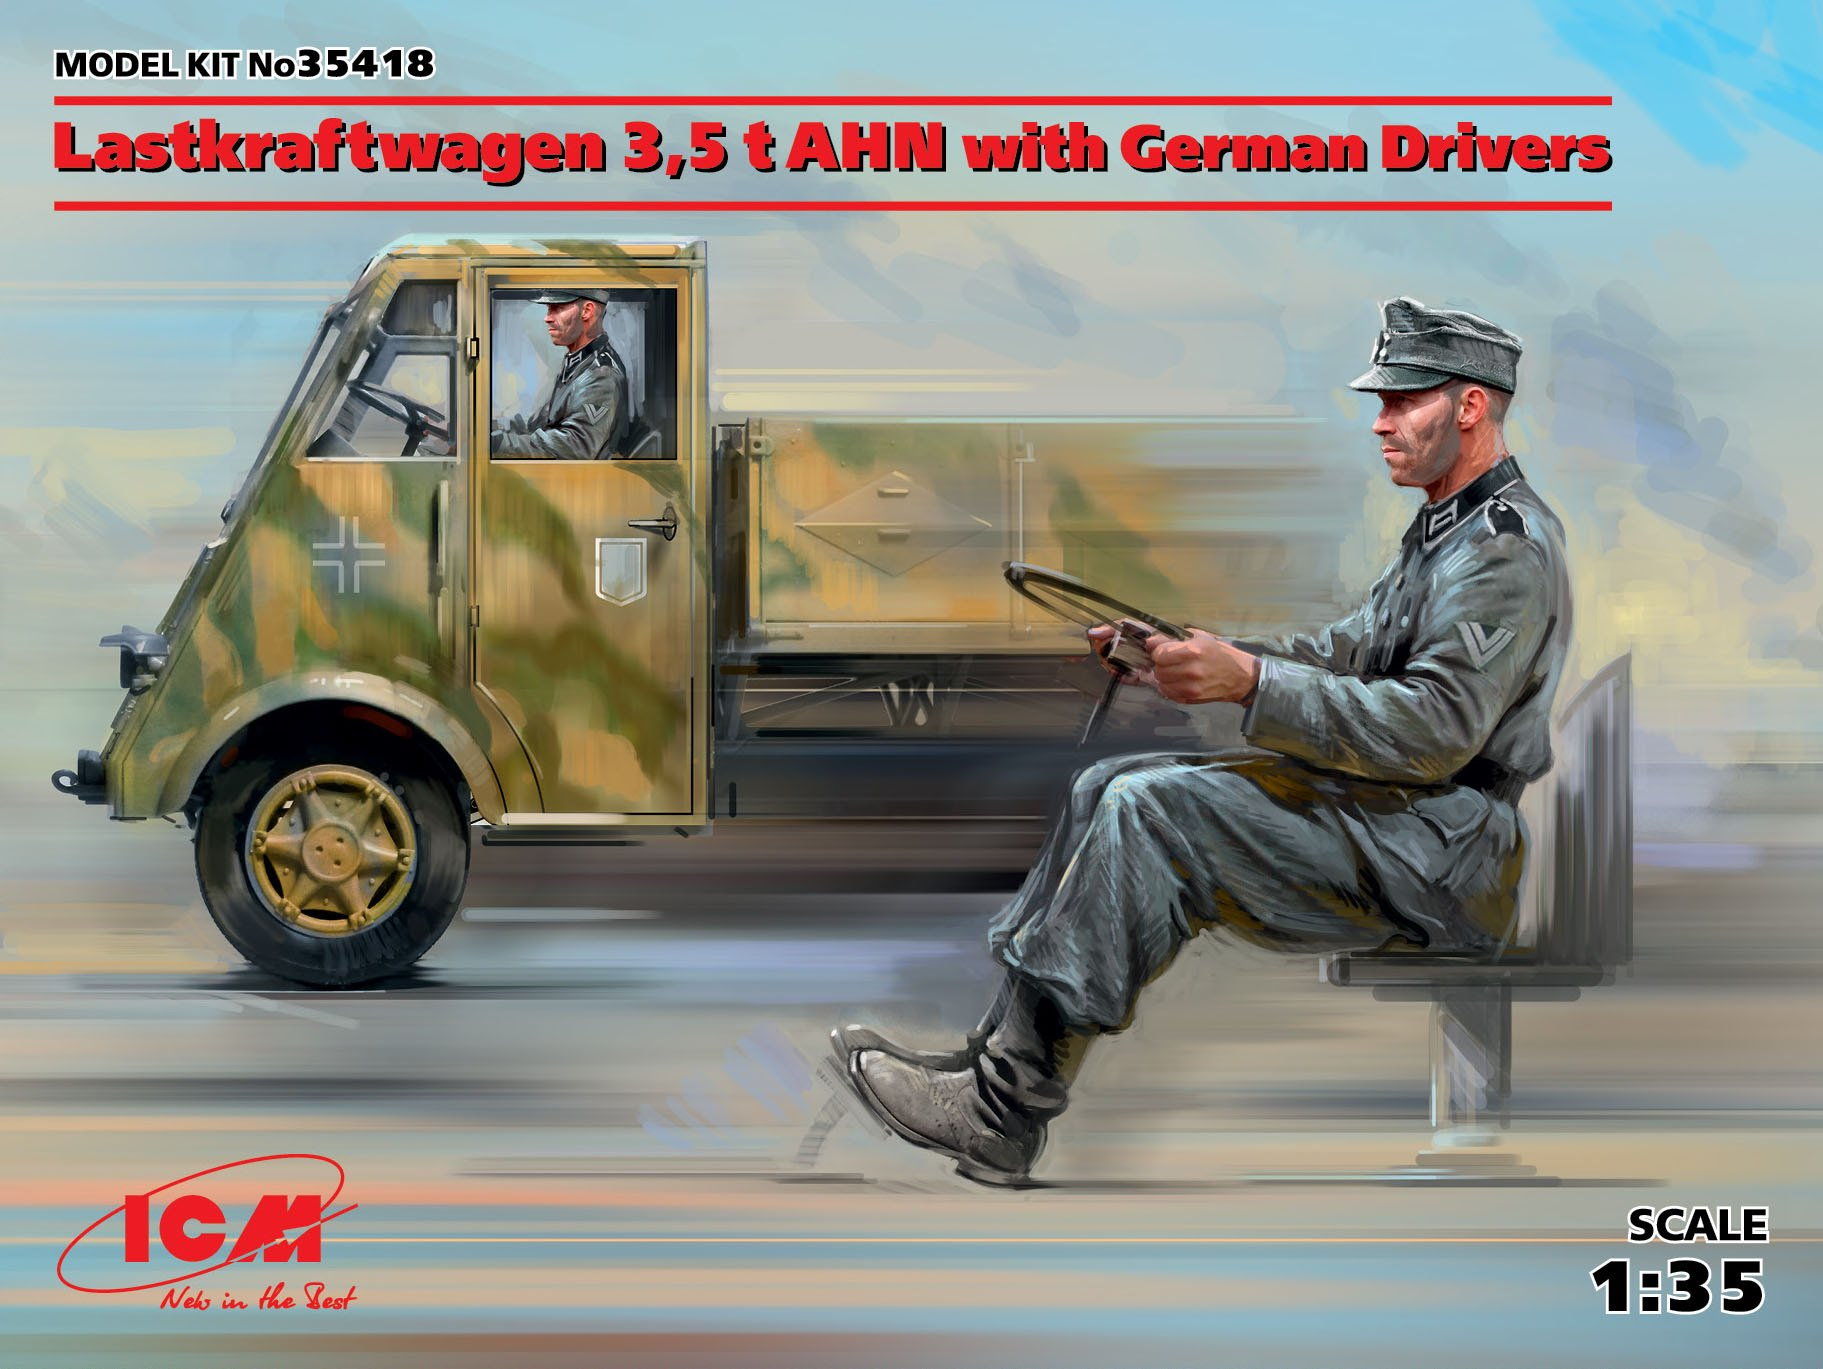 ICM Lastkraftwagen 3,5 t AHN with German Drivers